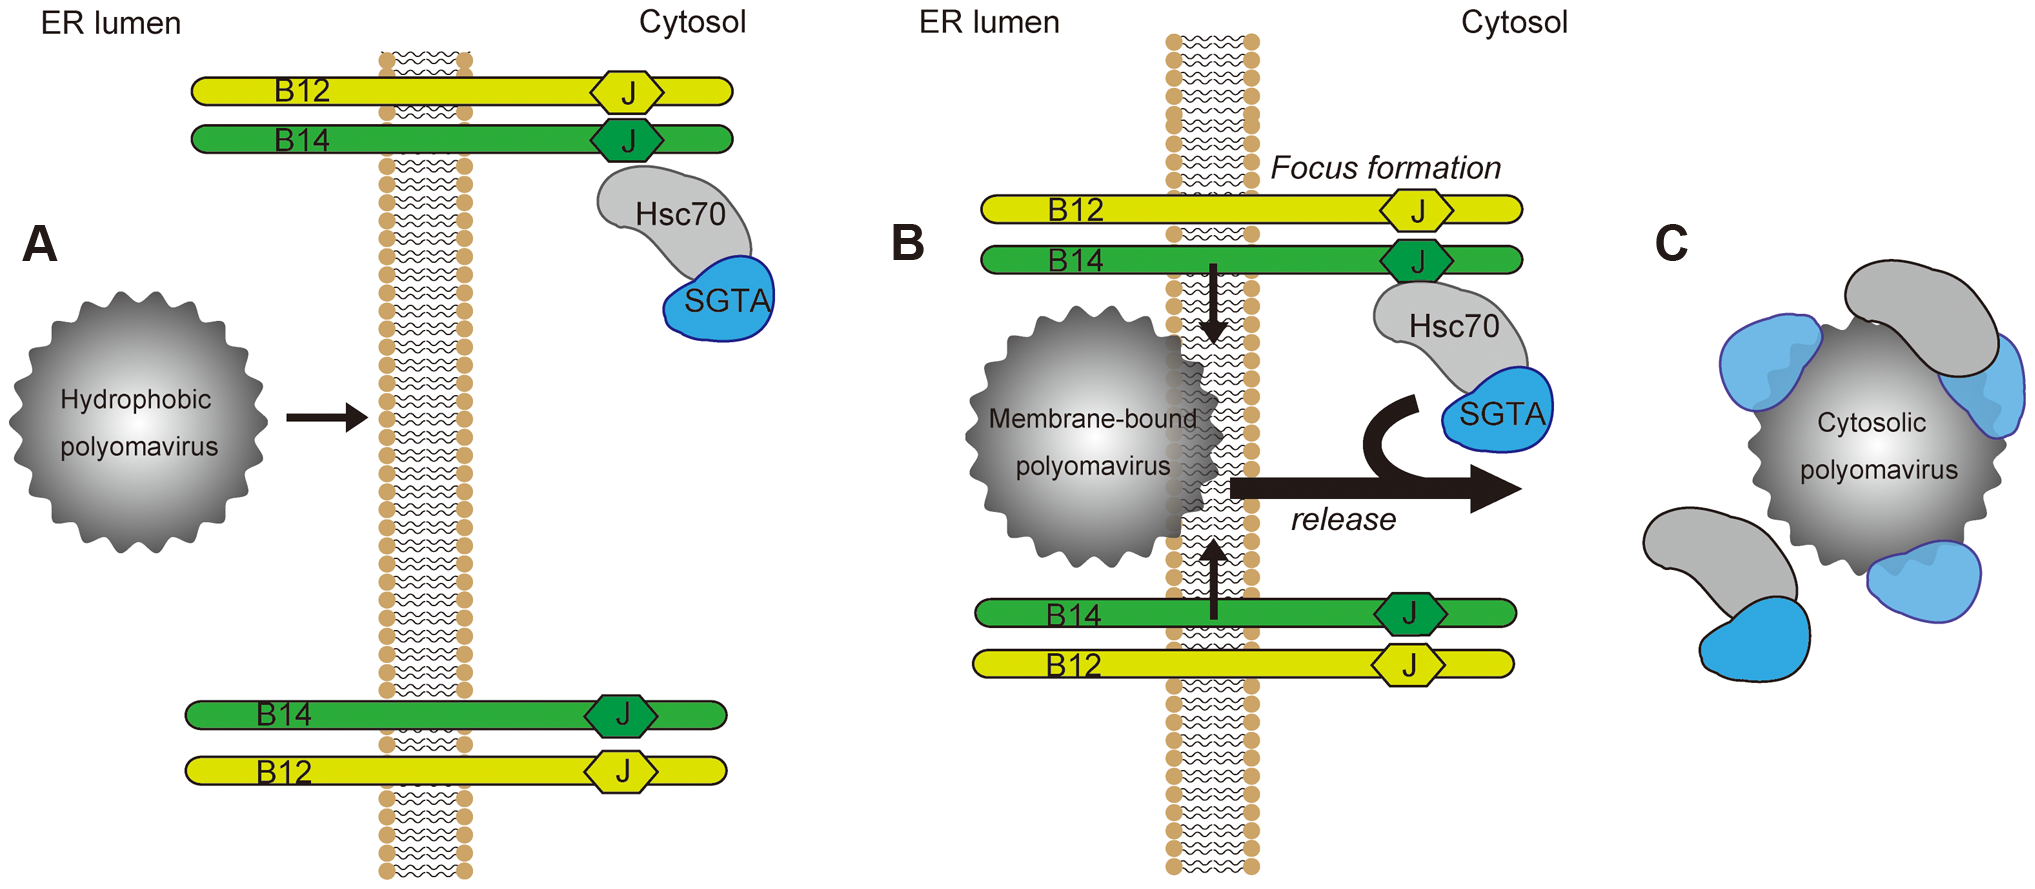 Model for ER-to-cytosol transport of polyomaviruses mediated by foci formation and cytosolic SGTA.